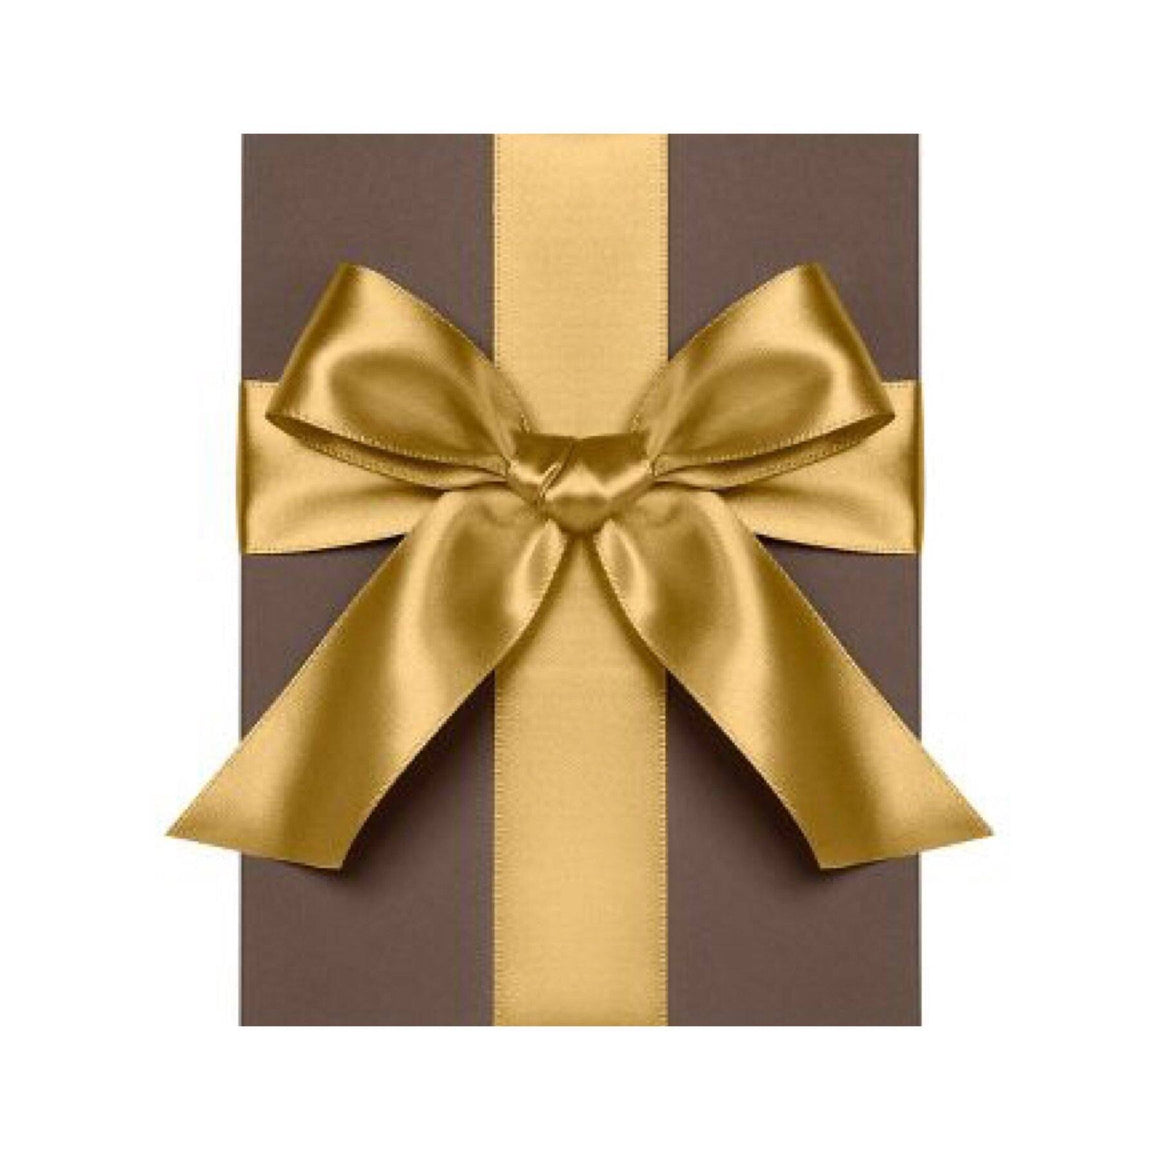 "GIFT GIVING - RIBBON 1"" VINTAGE GOLD, RIBBON, WASTE NOT PAPER - Bon + Co. Party Studio"